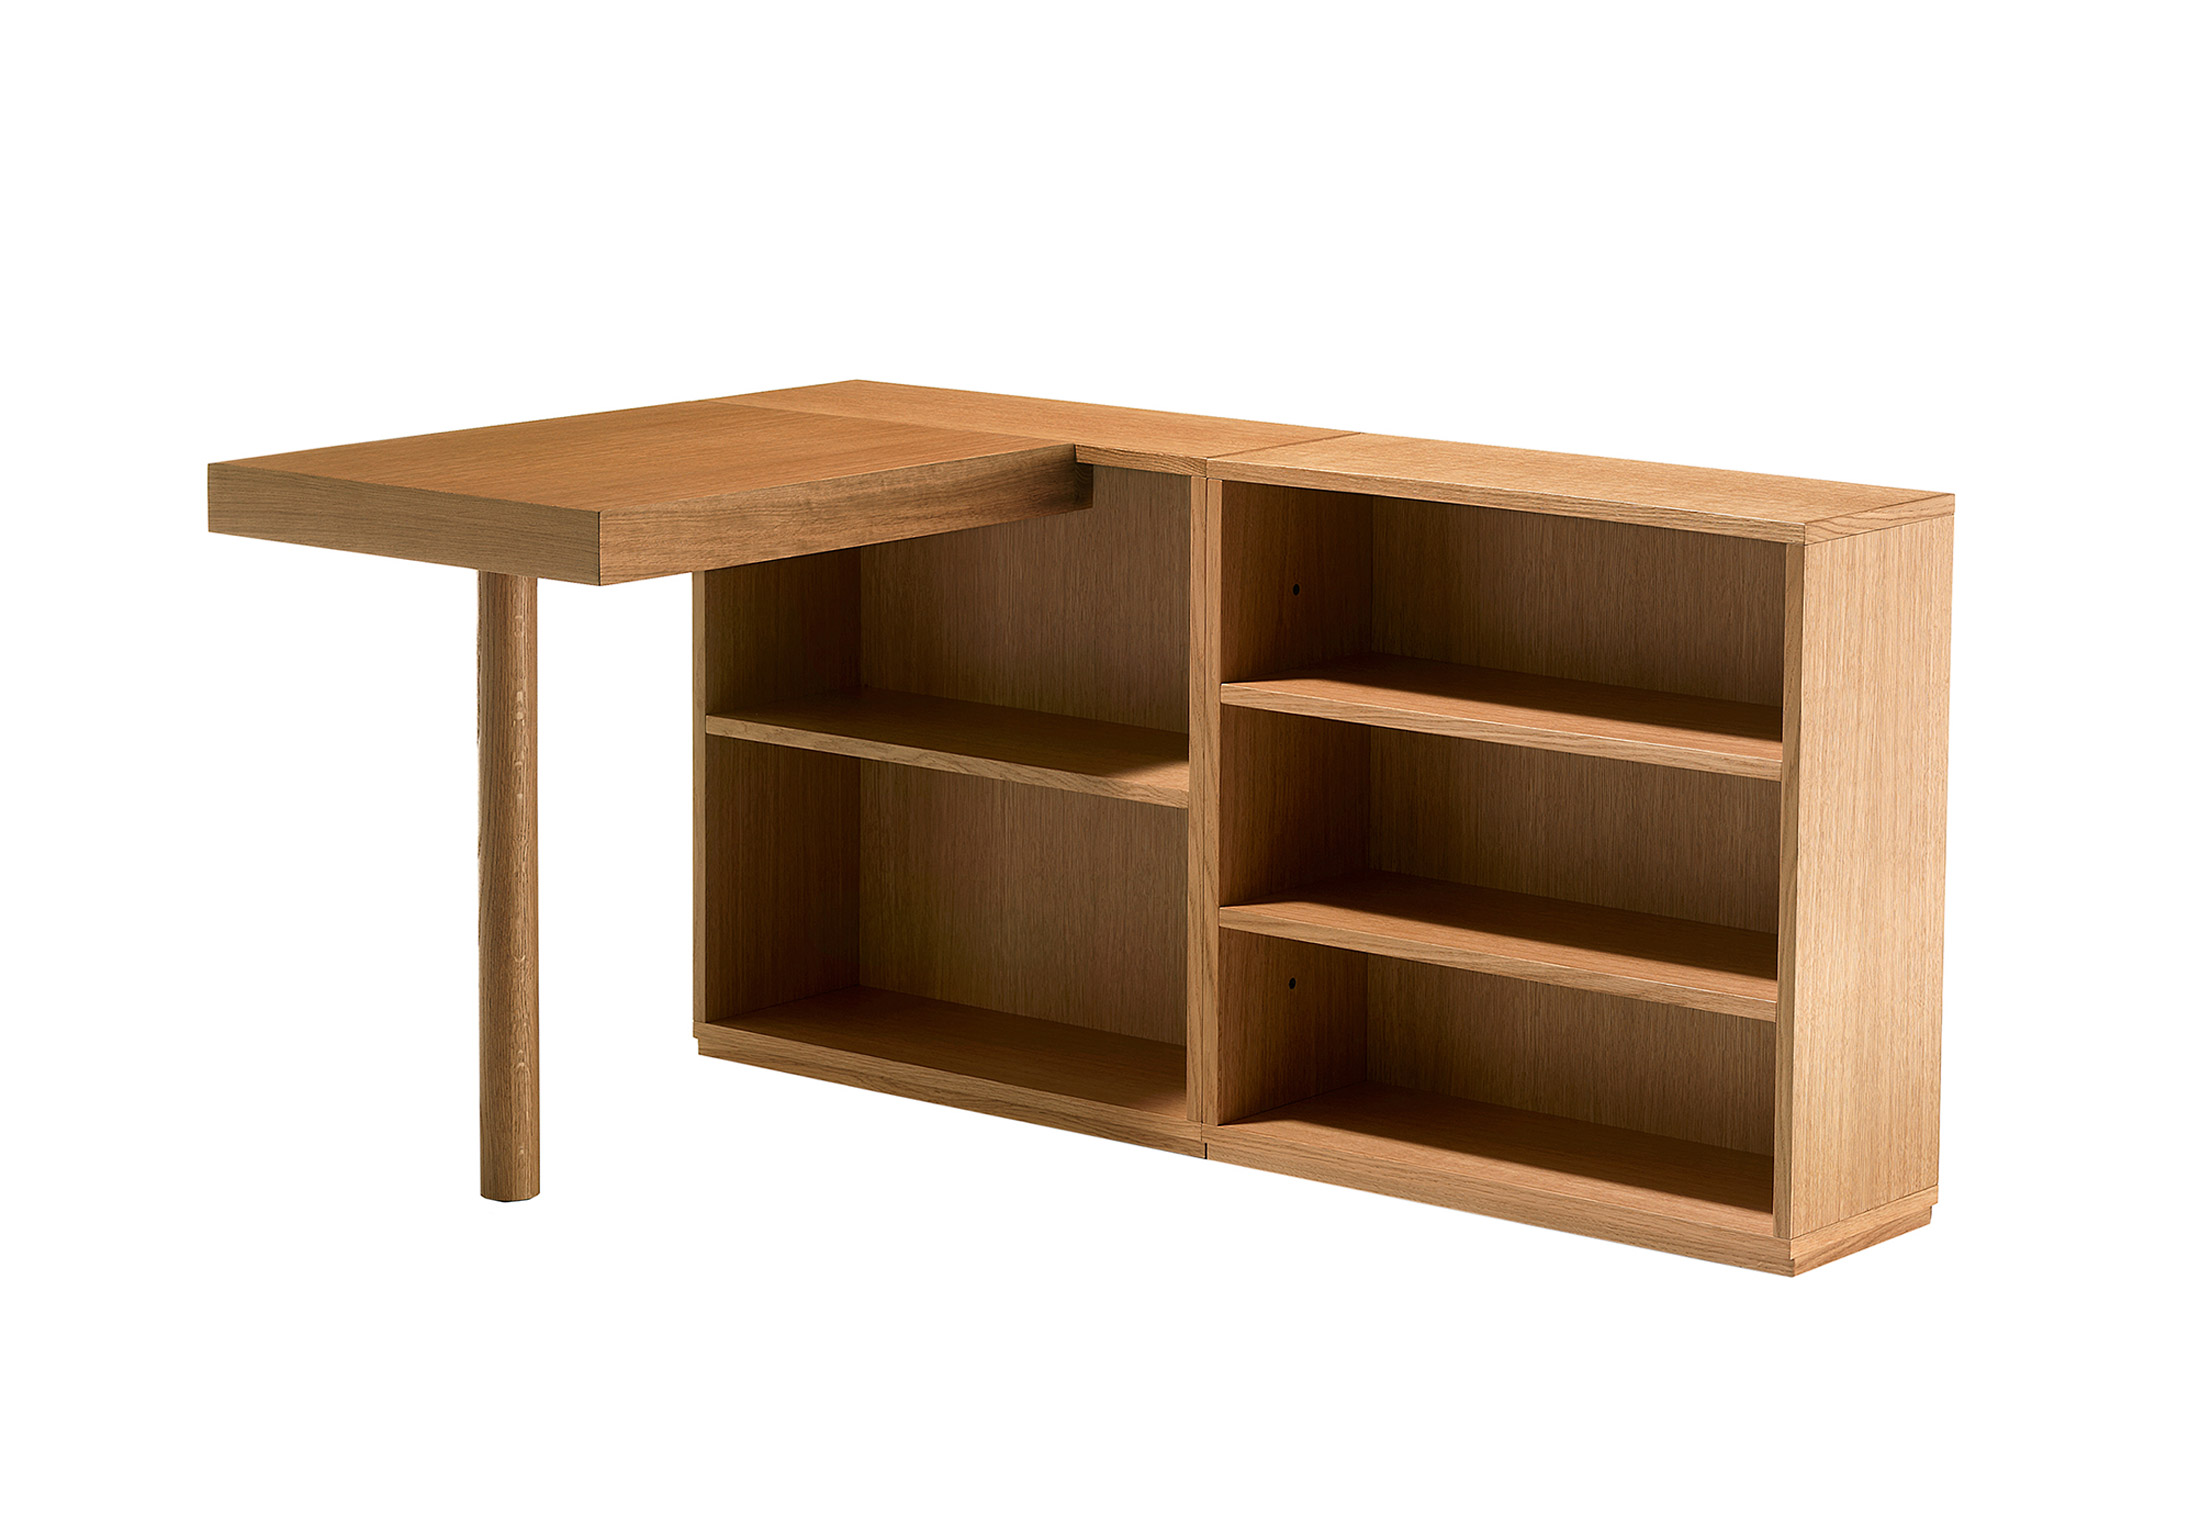 Office contract furniture storage shelving shelf systems - Lc 16 By Cassina Stylepark